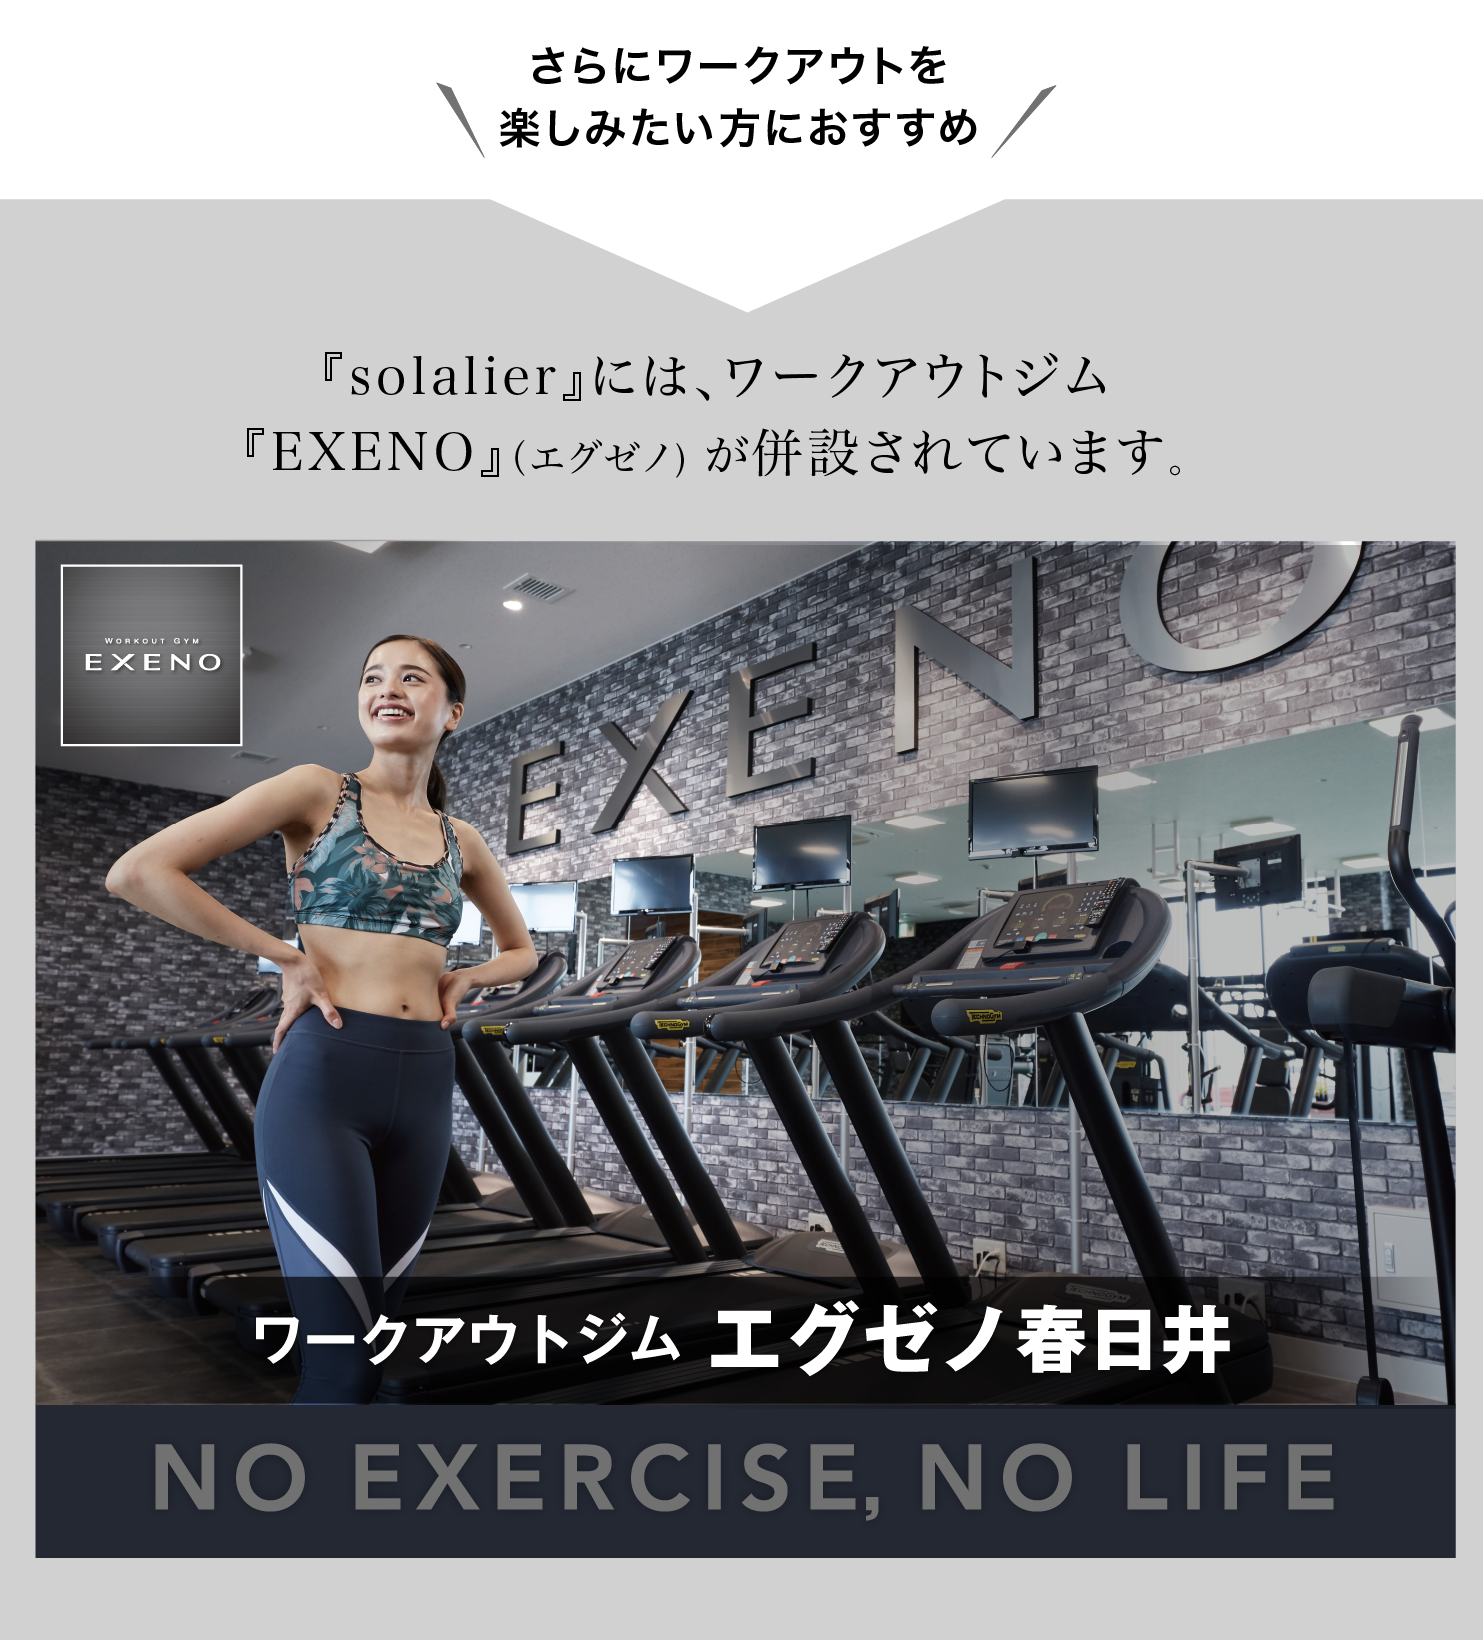 workout gym exeno、エグゼノ